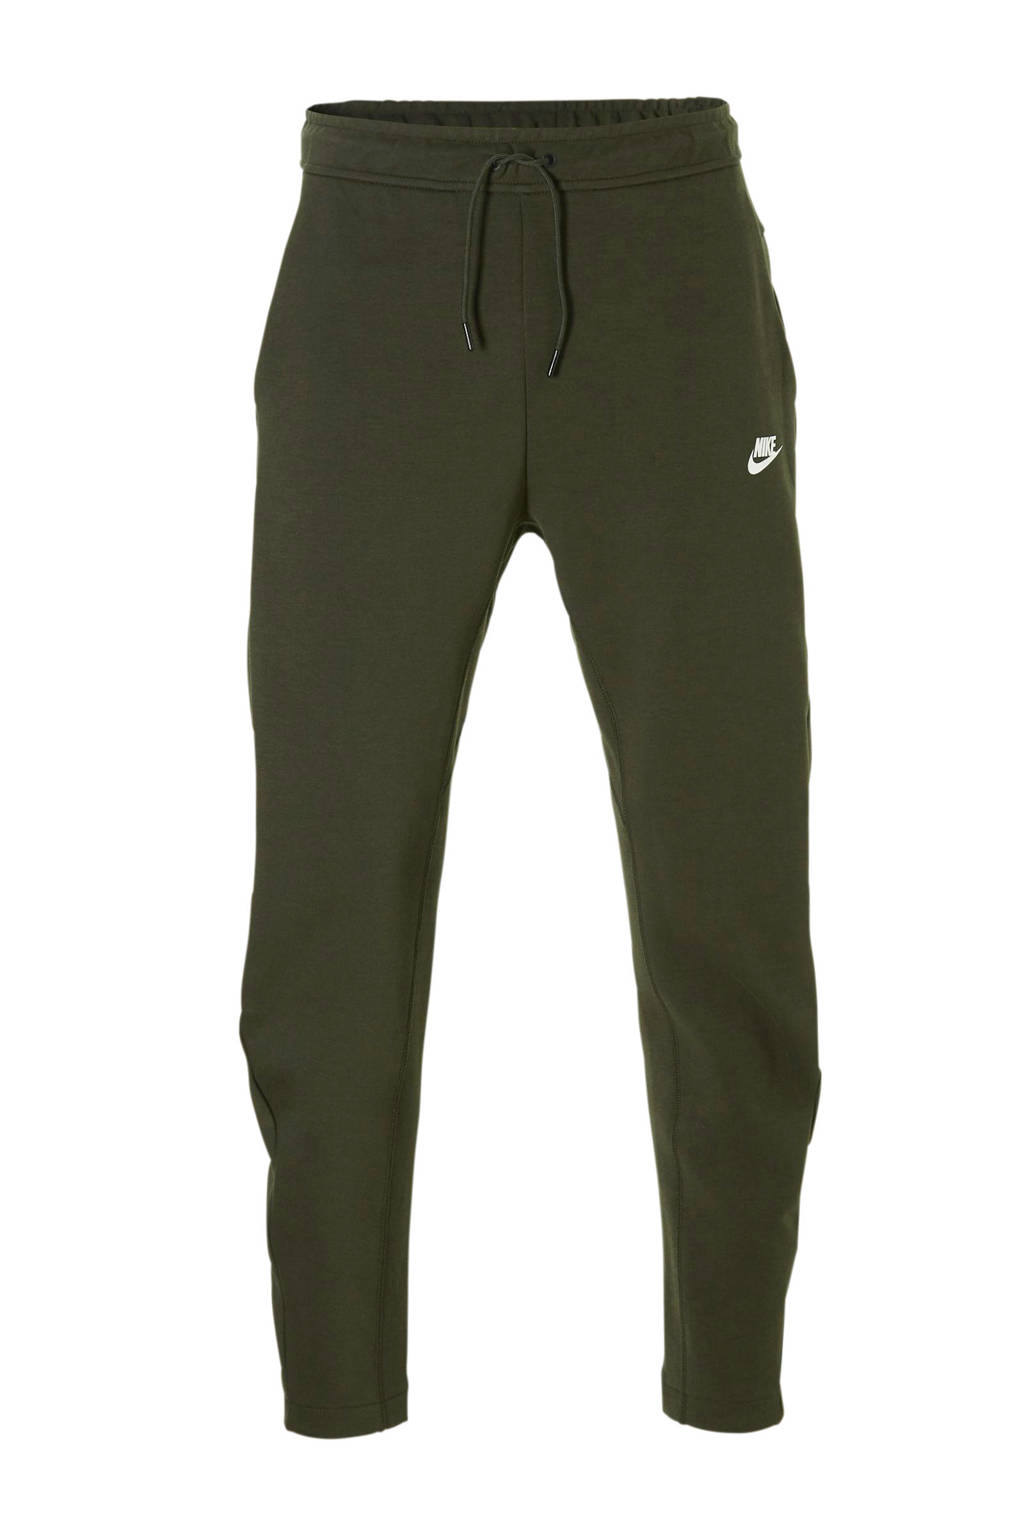 Joggingbroek Baggy Heren.Nike Joggingbroek Kaki Wehkamp